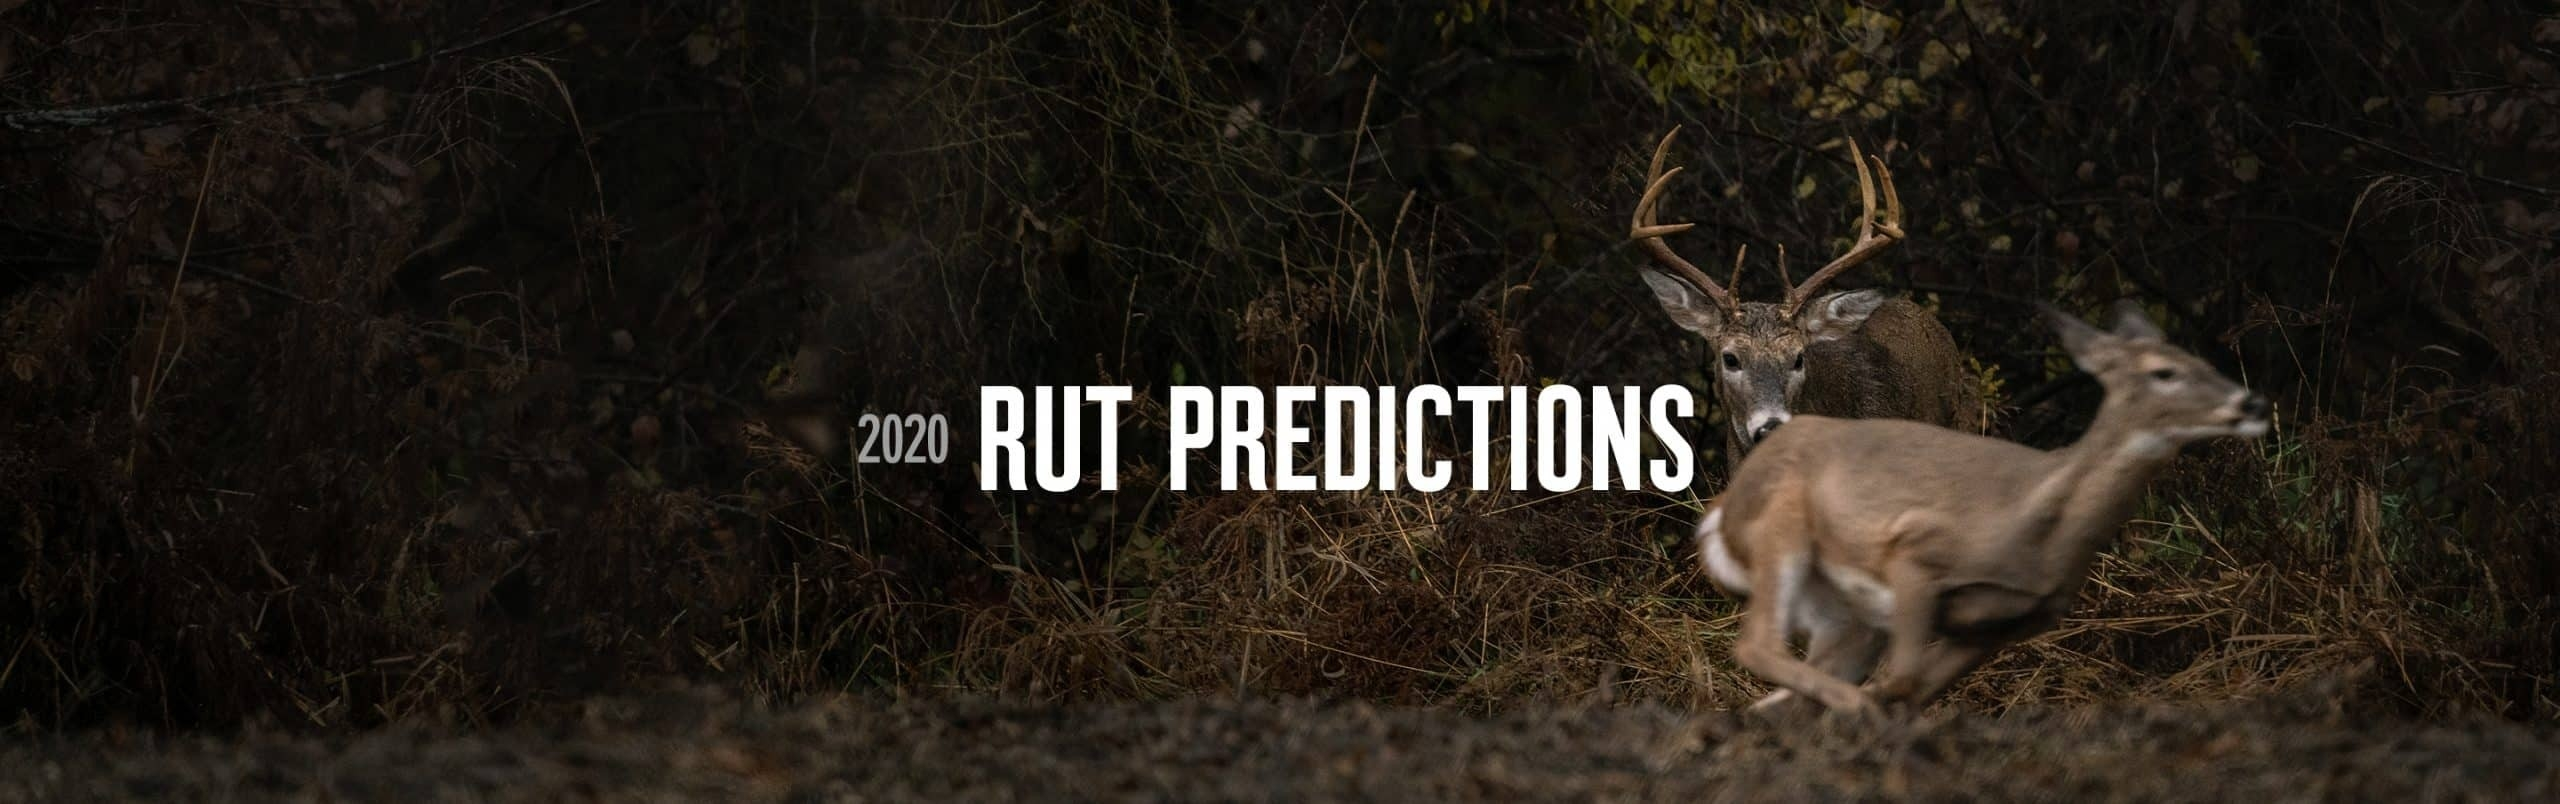 2020 Rut Predictions | Onx Maps  When Is The Peak Of The Rut In Pa. In 2021